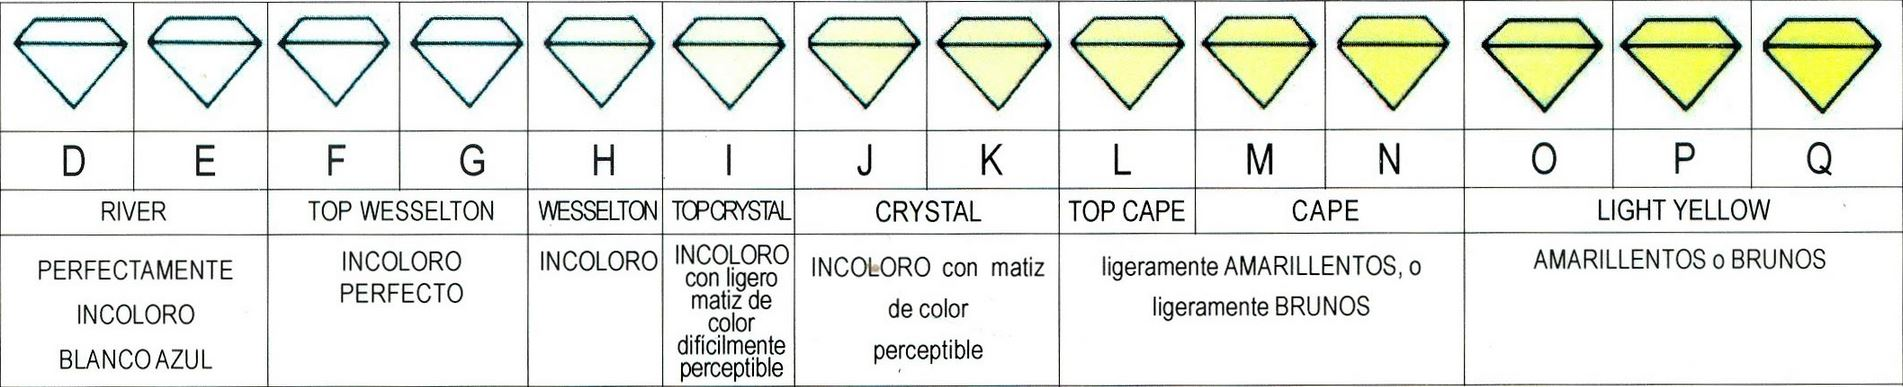 Color de los diamantes